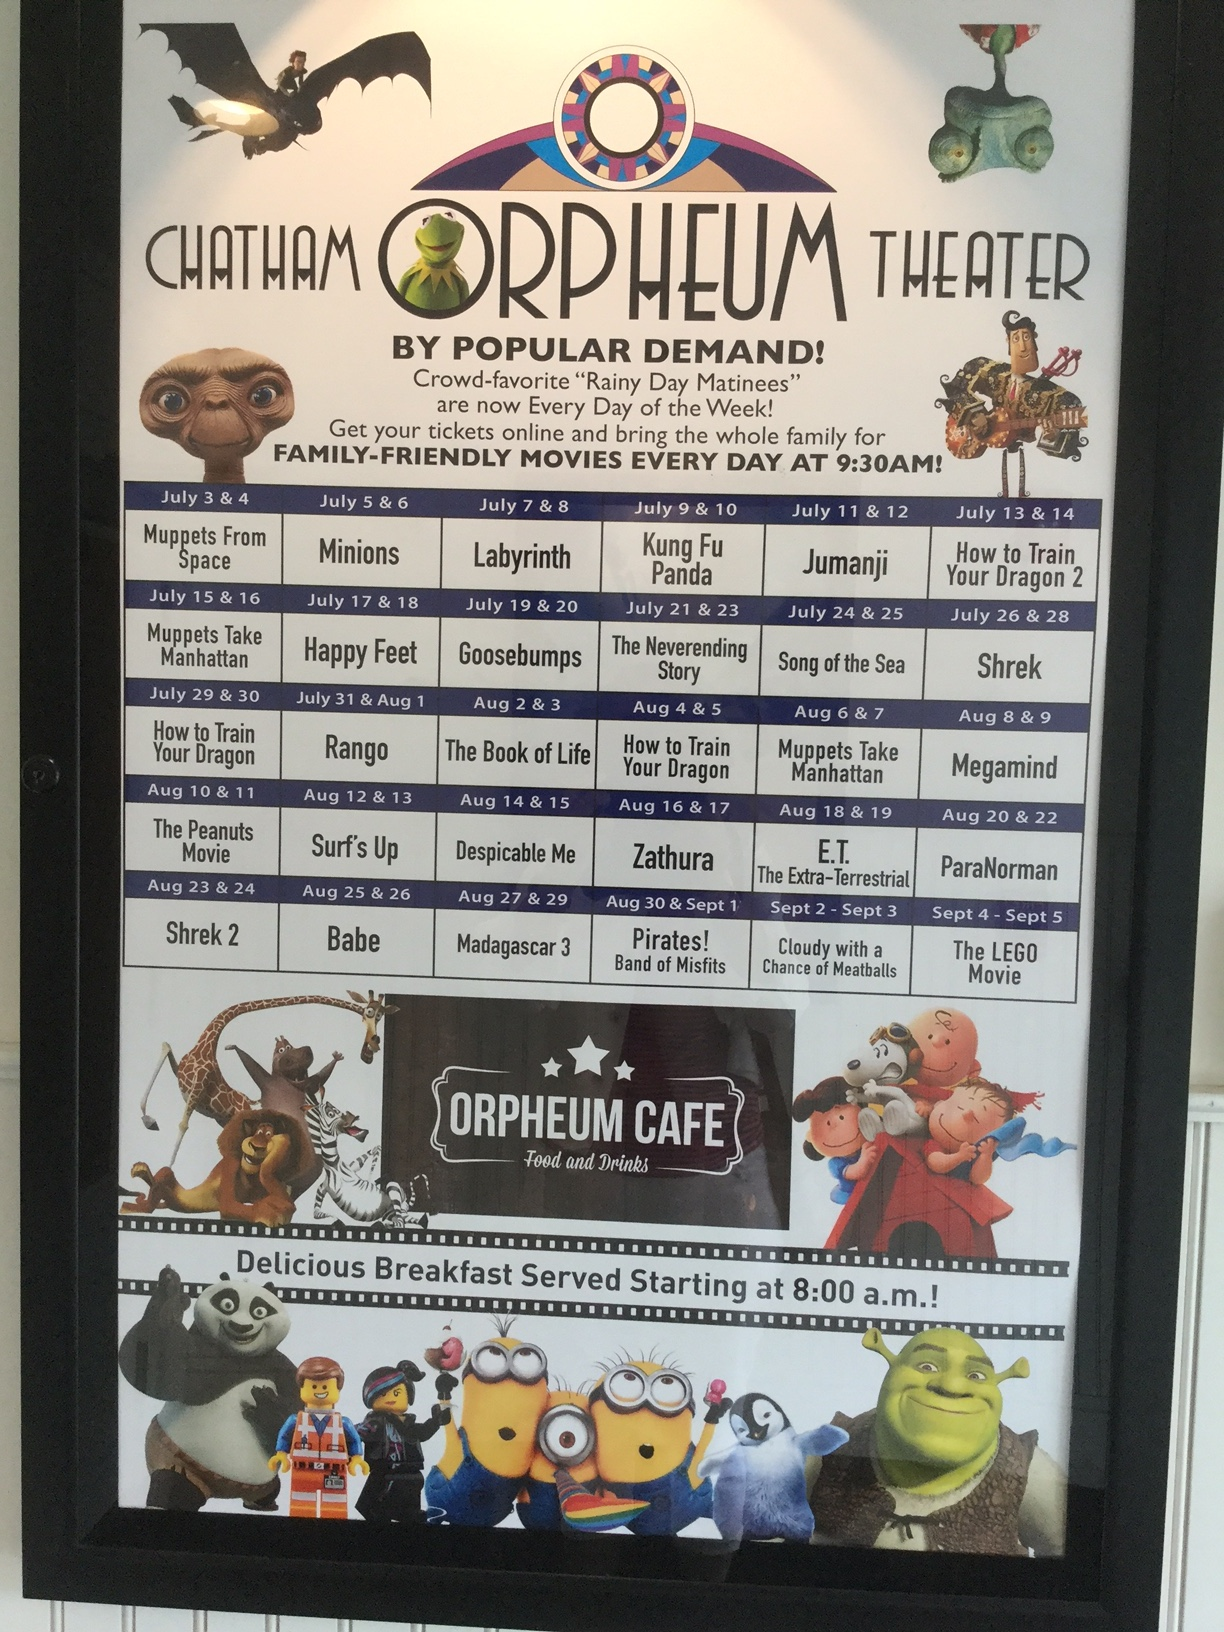 Chatham Orpheum Movie Poster